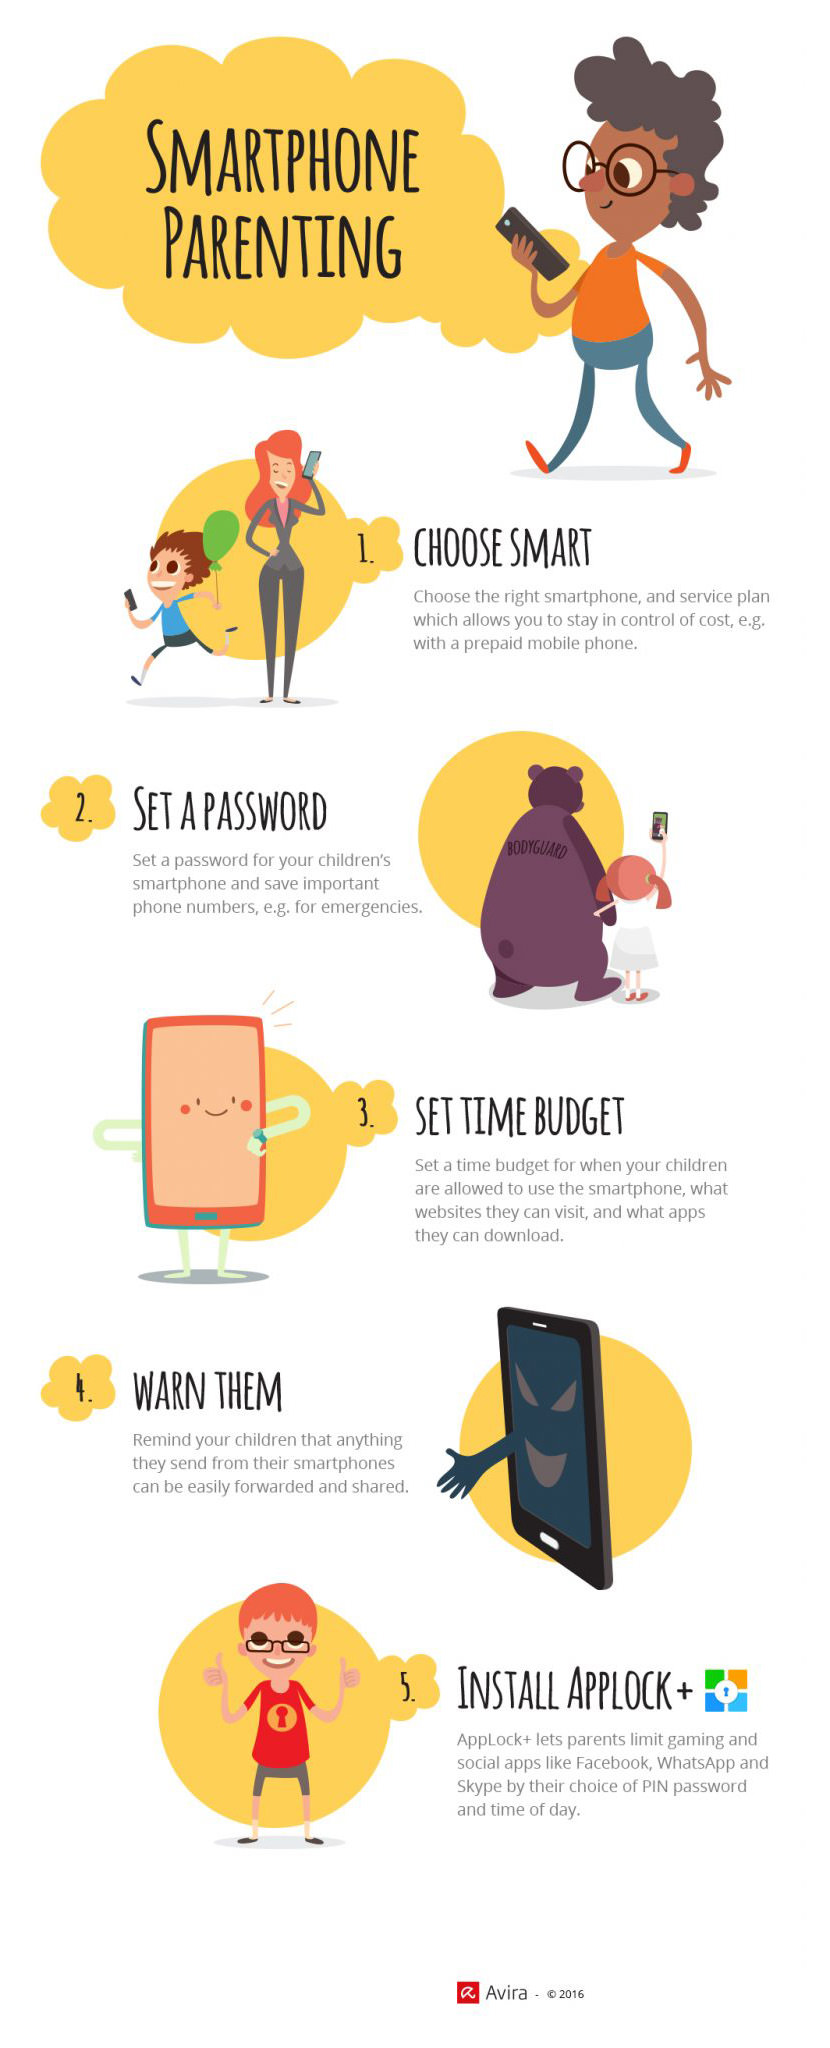 Tips And Tricks For Smartphone Parenting